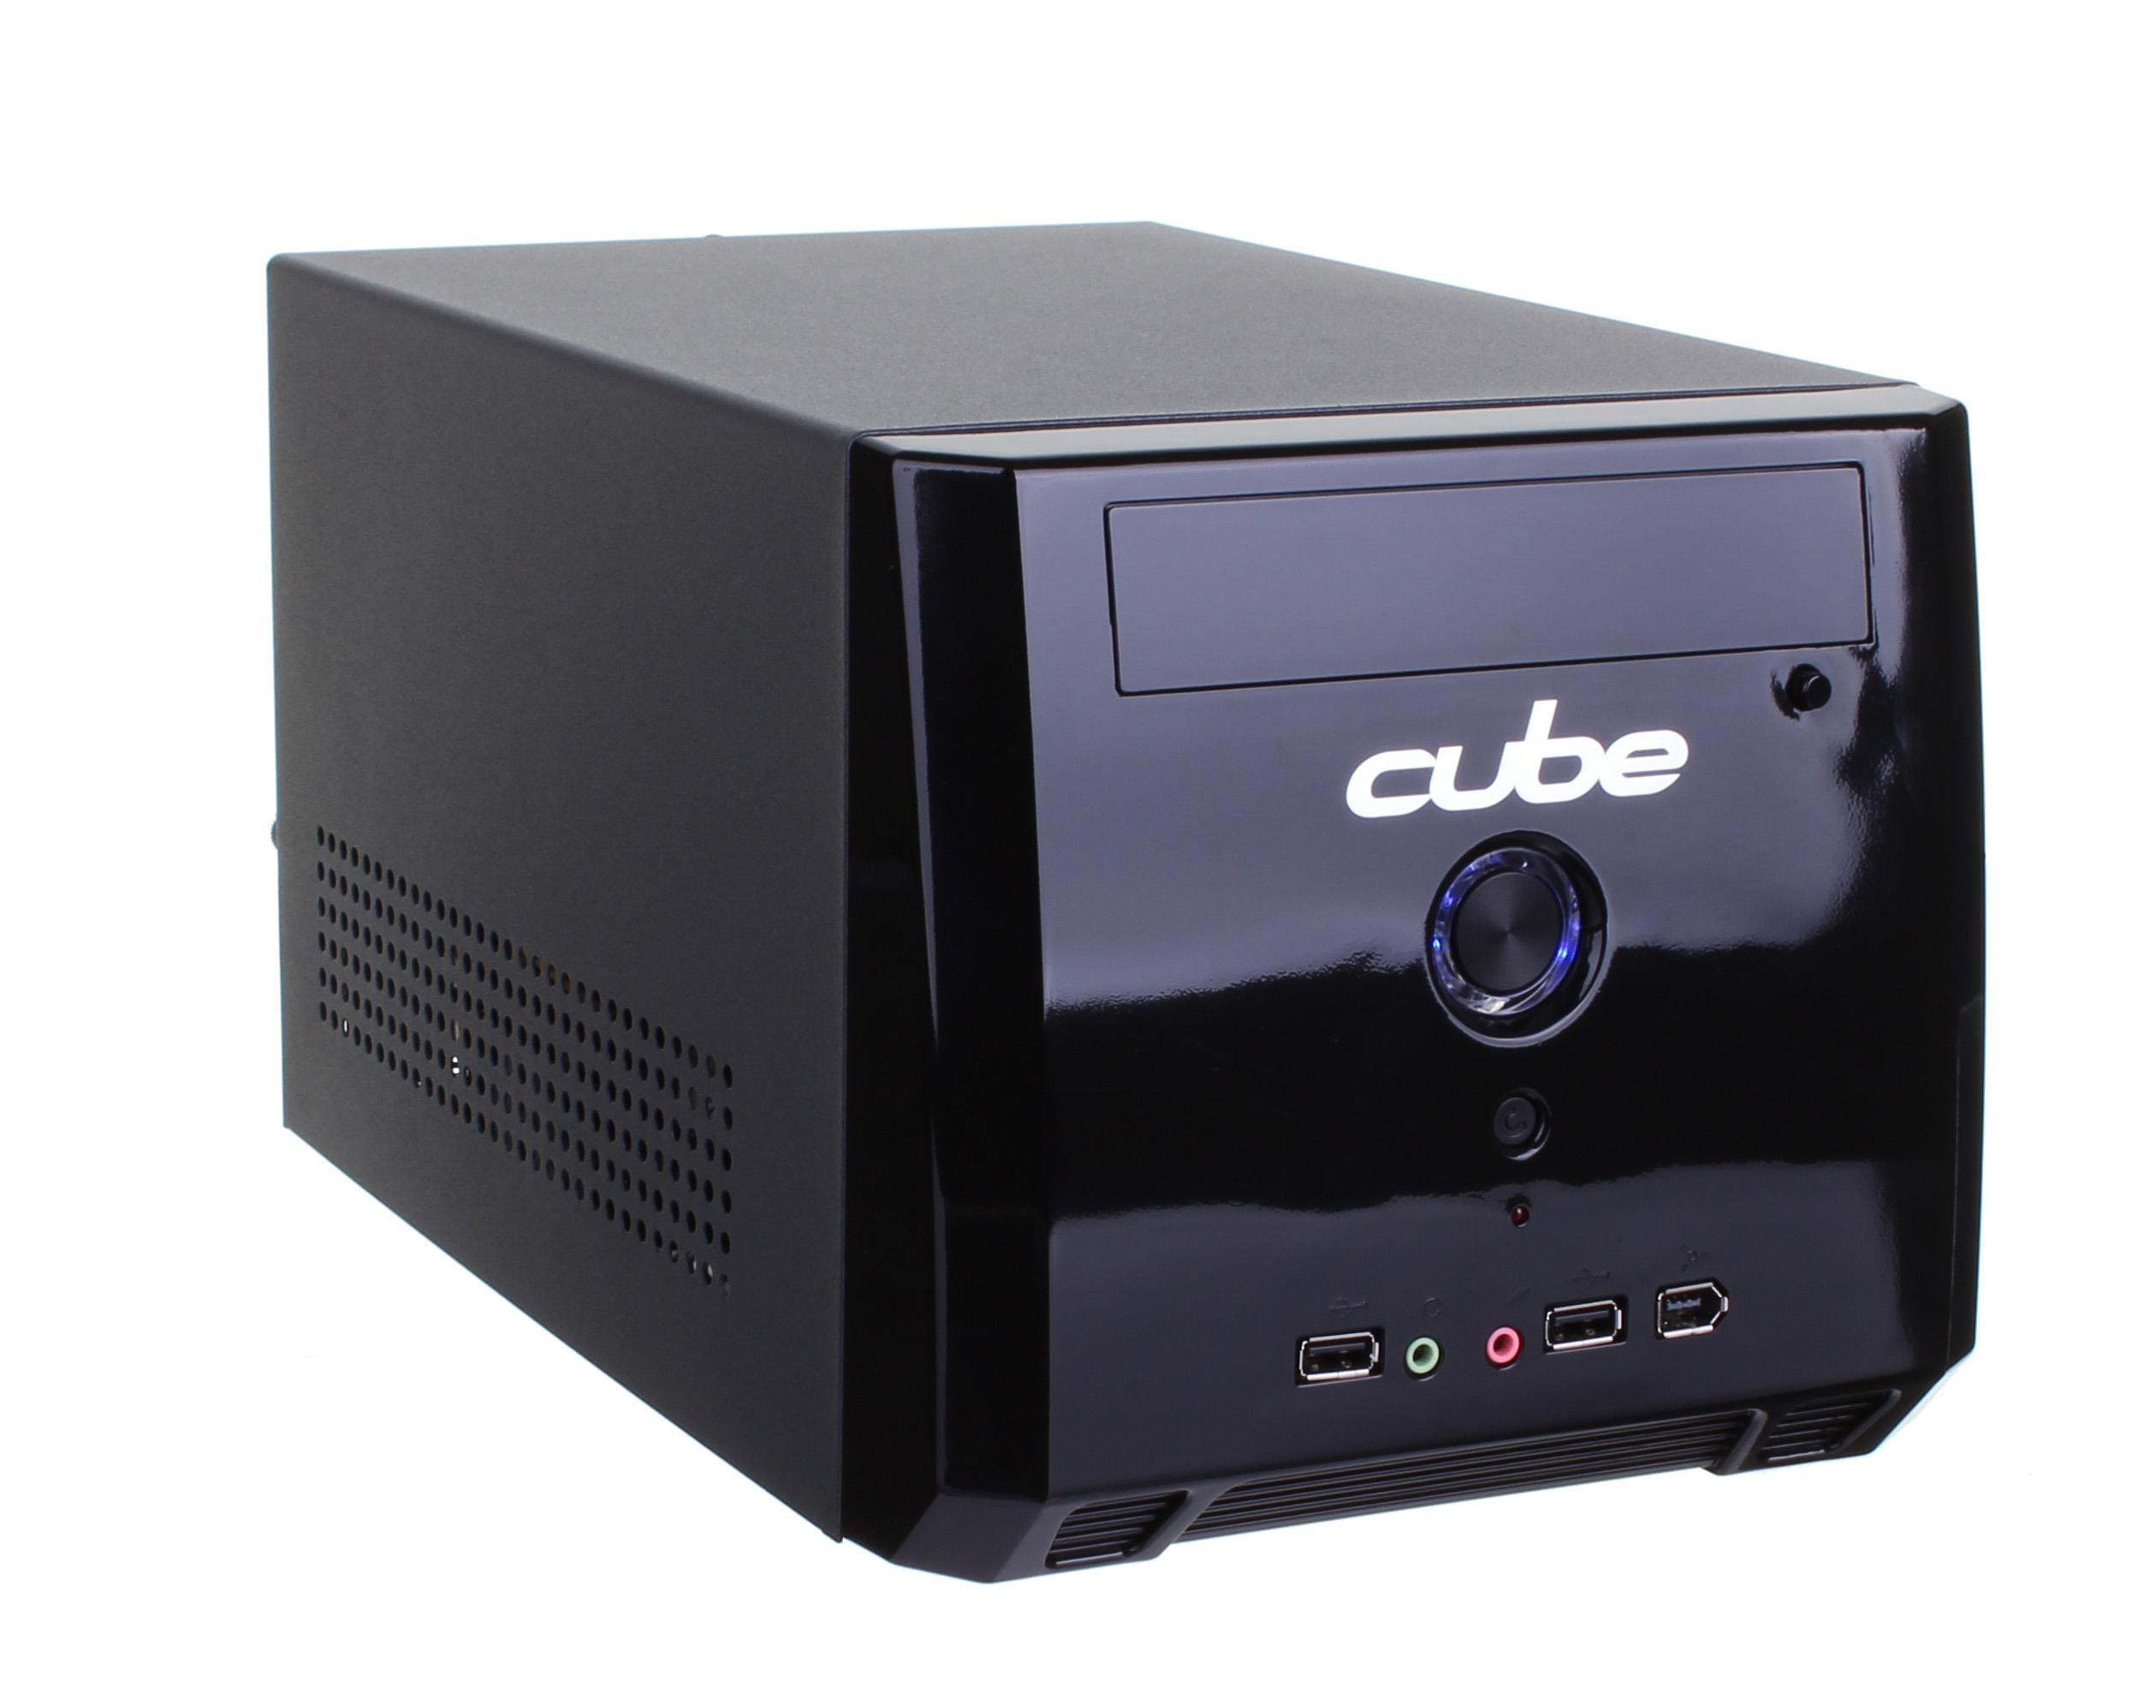 Cube Ace + AMD Quad Core with Radeon R7 240 Graphics Card ideal for Minecraft Gaming Mini PC Desktop 500Gb Hard Drive & 4Gb RAM and Windows 8.1 Installed!